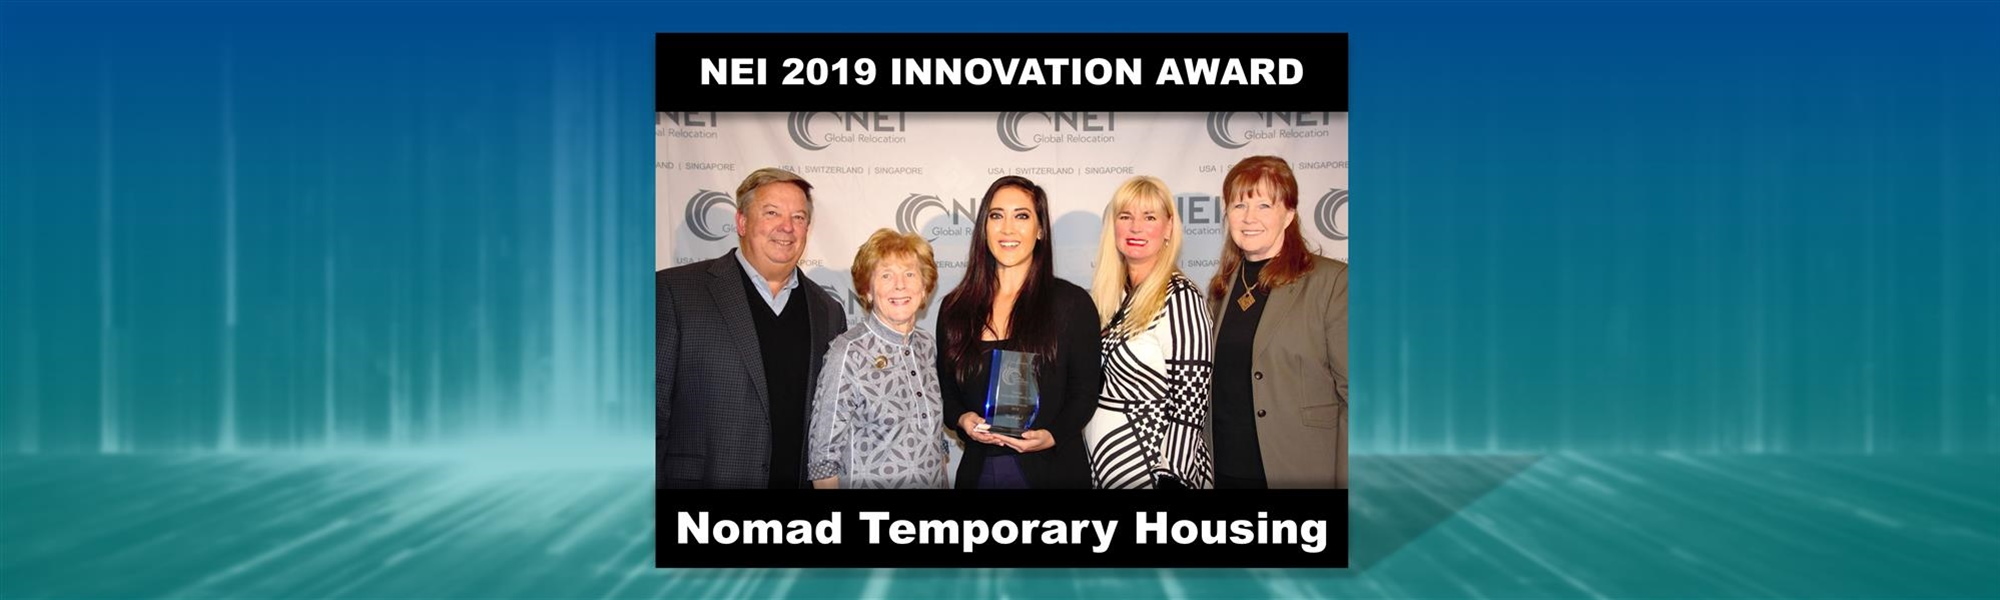 NEI Recognizes Nomad Temporary Housing with Innovation Award